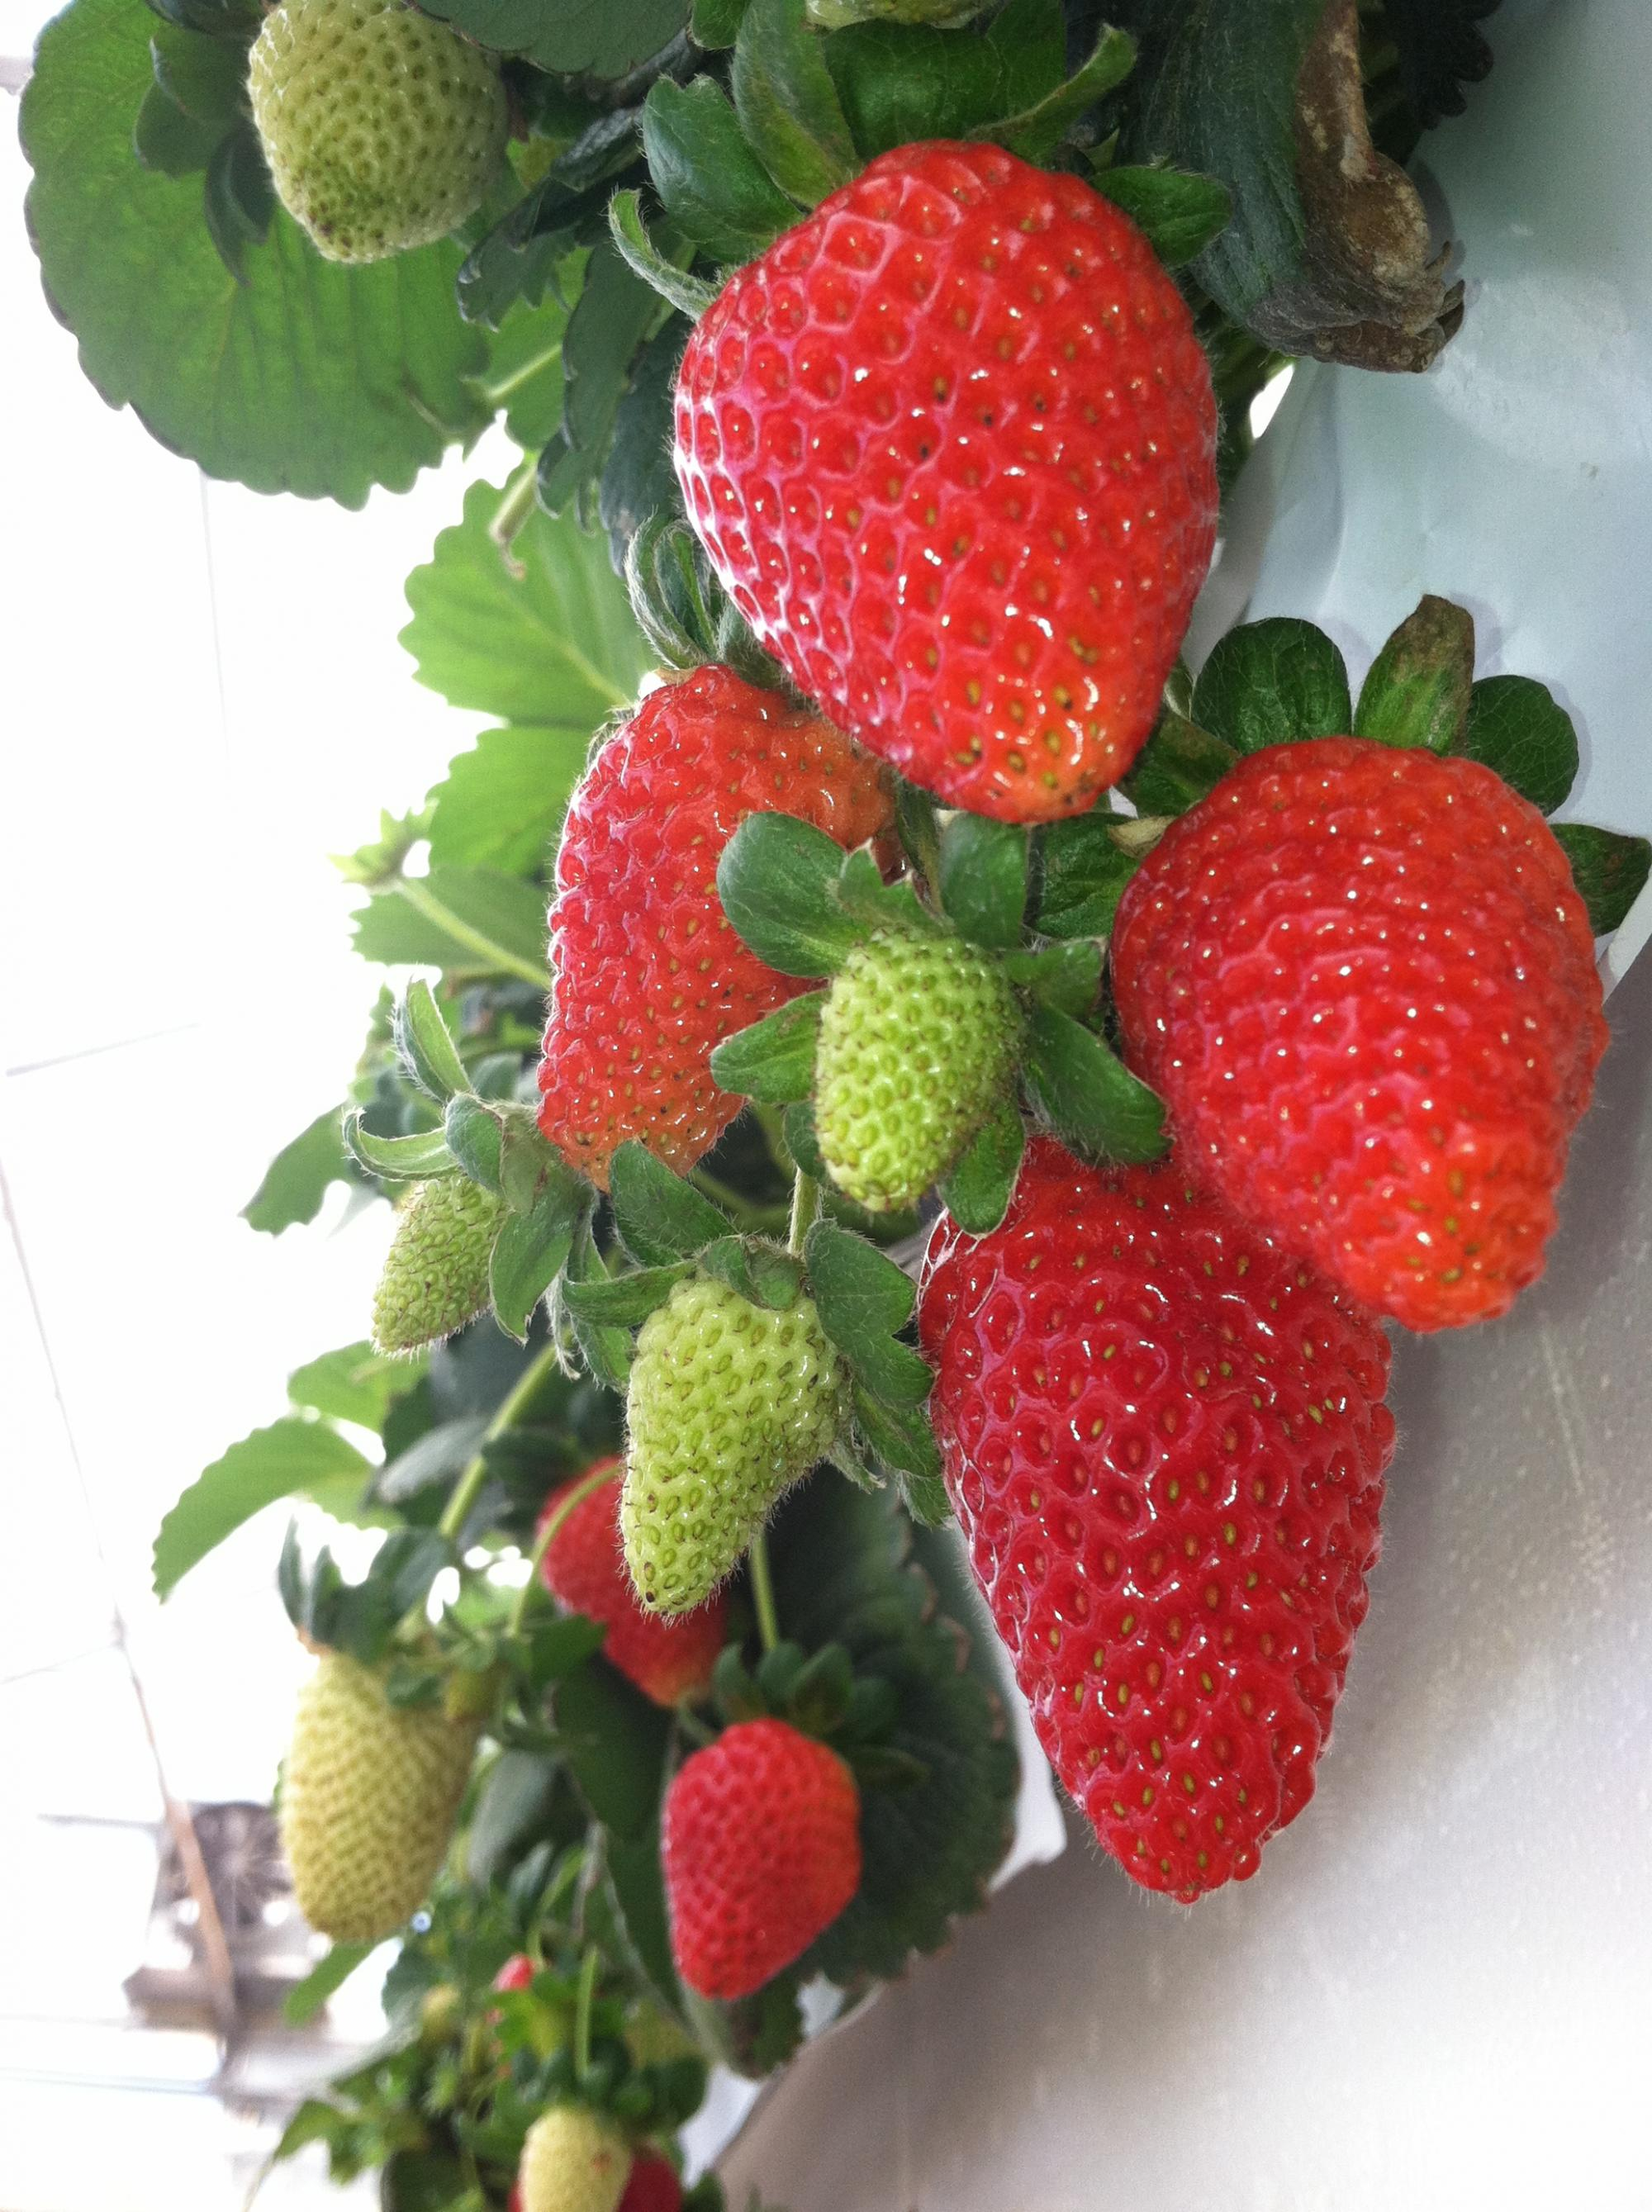 Strawberries ripen in the UA strawberry project greenhouse.